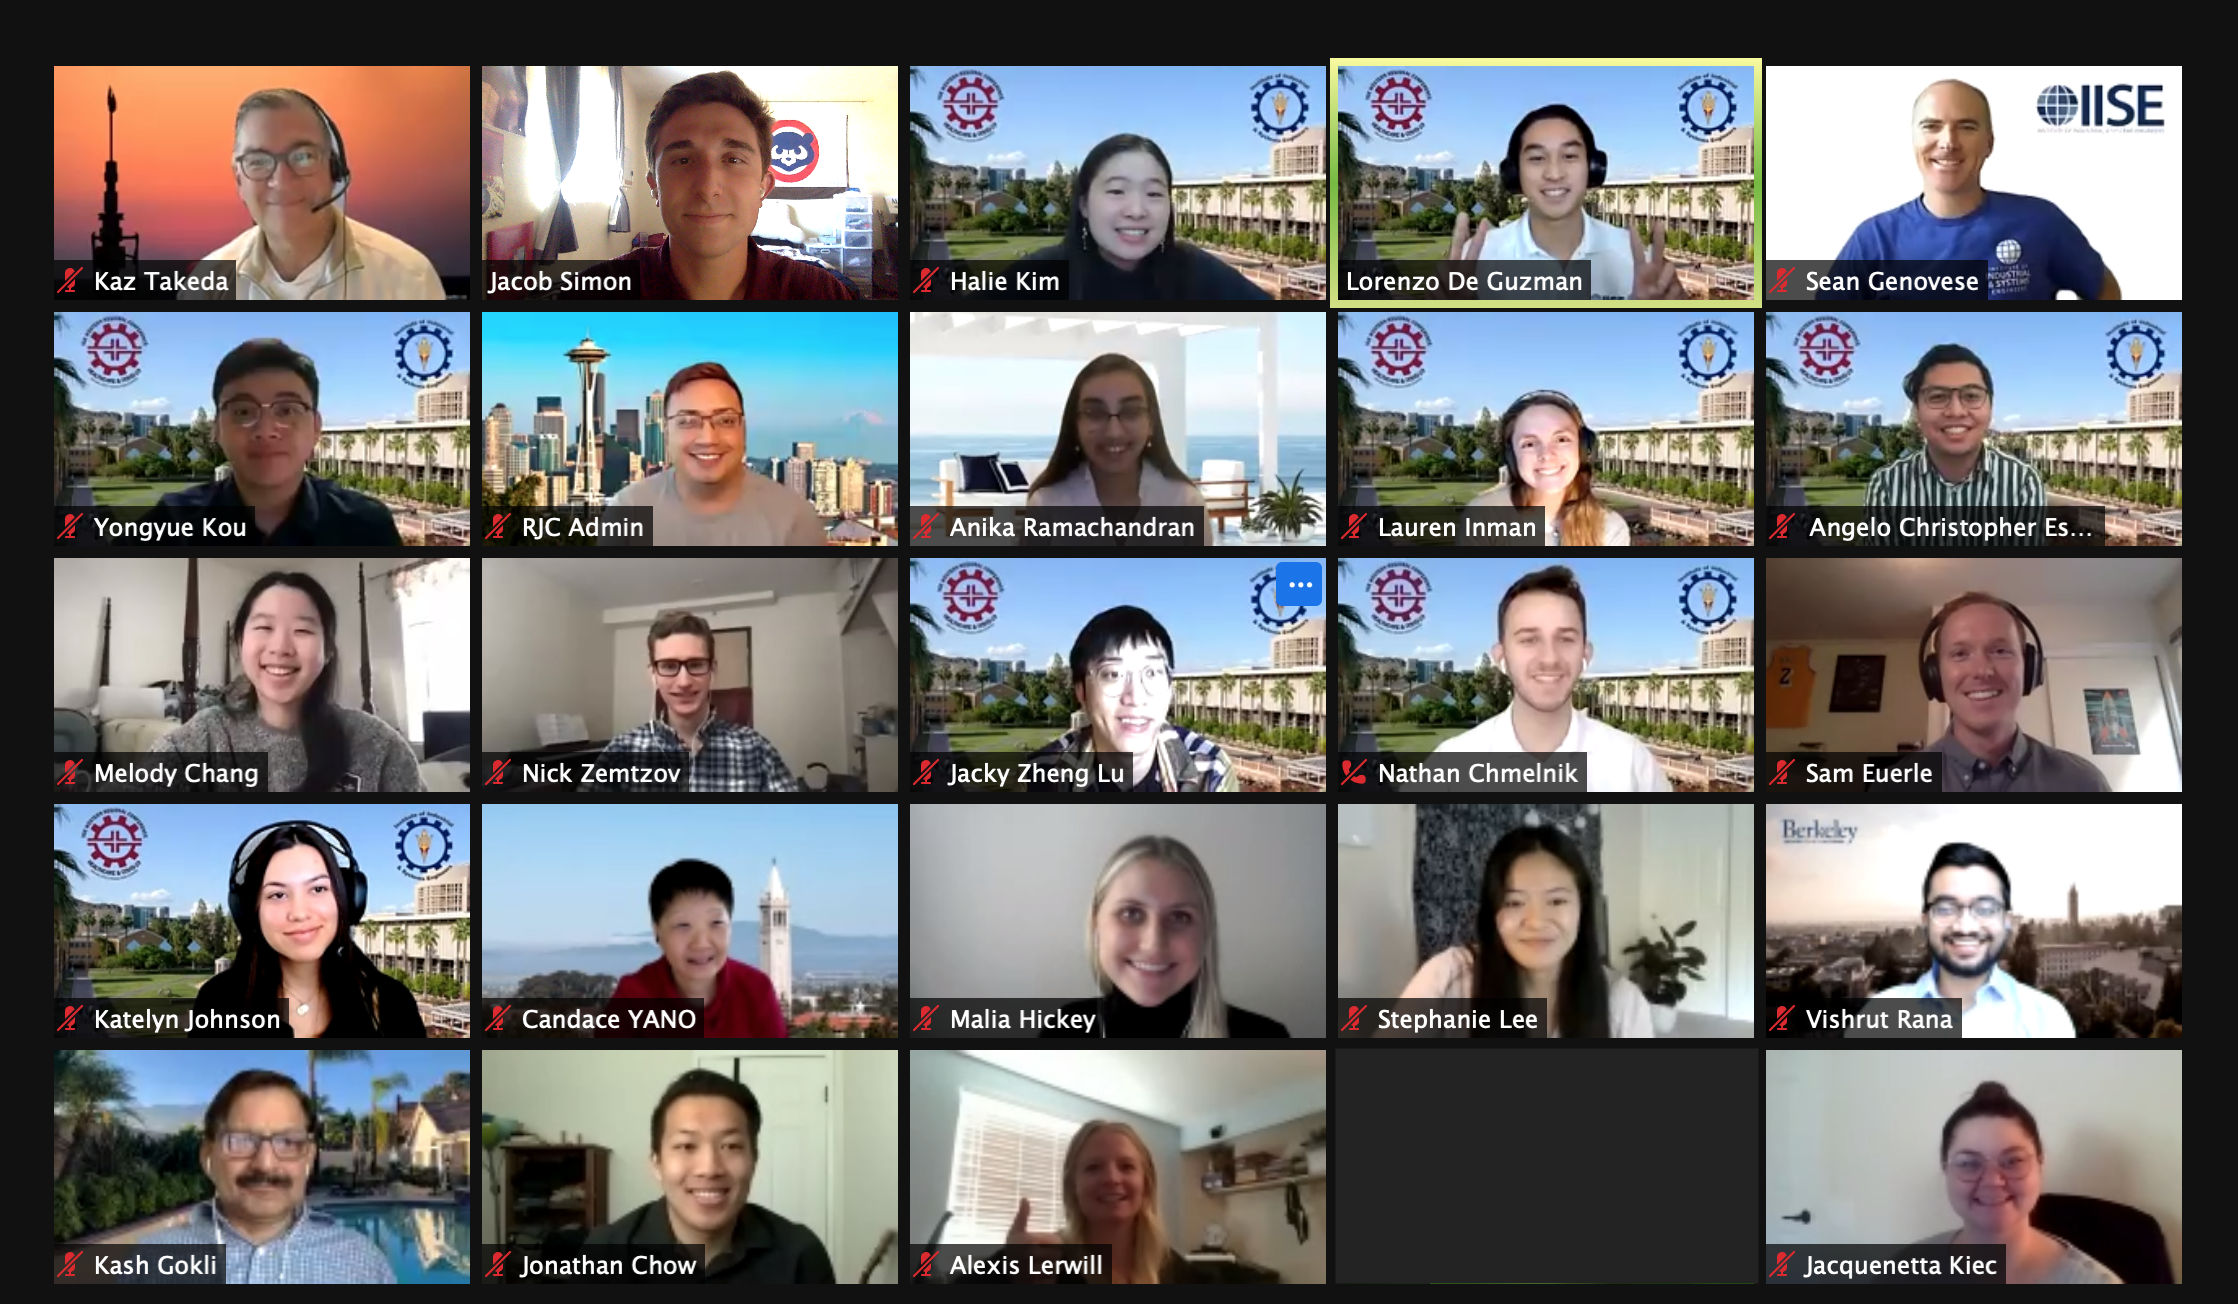 A screenshot of a Zoom gathering of the IISE Confernece hosted by ASU